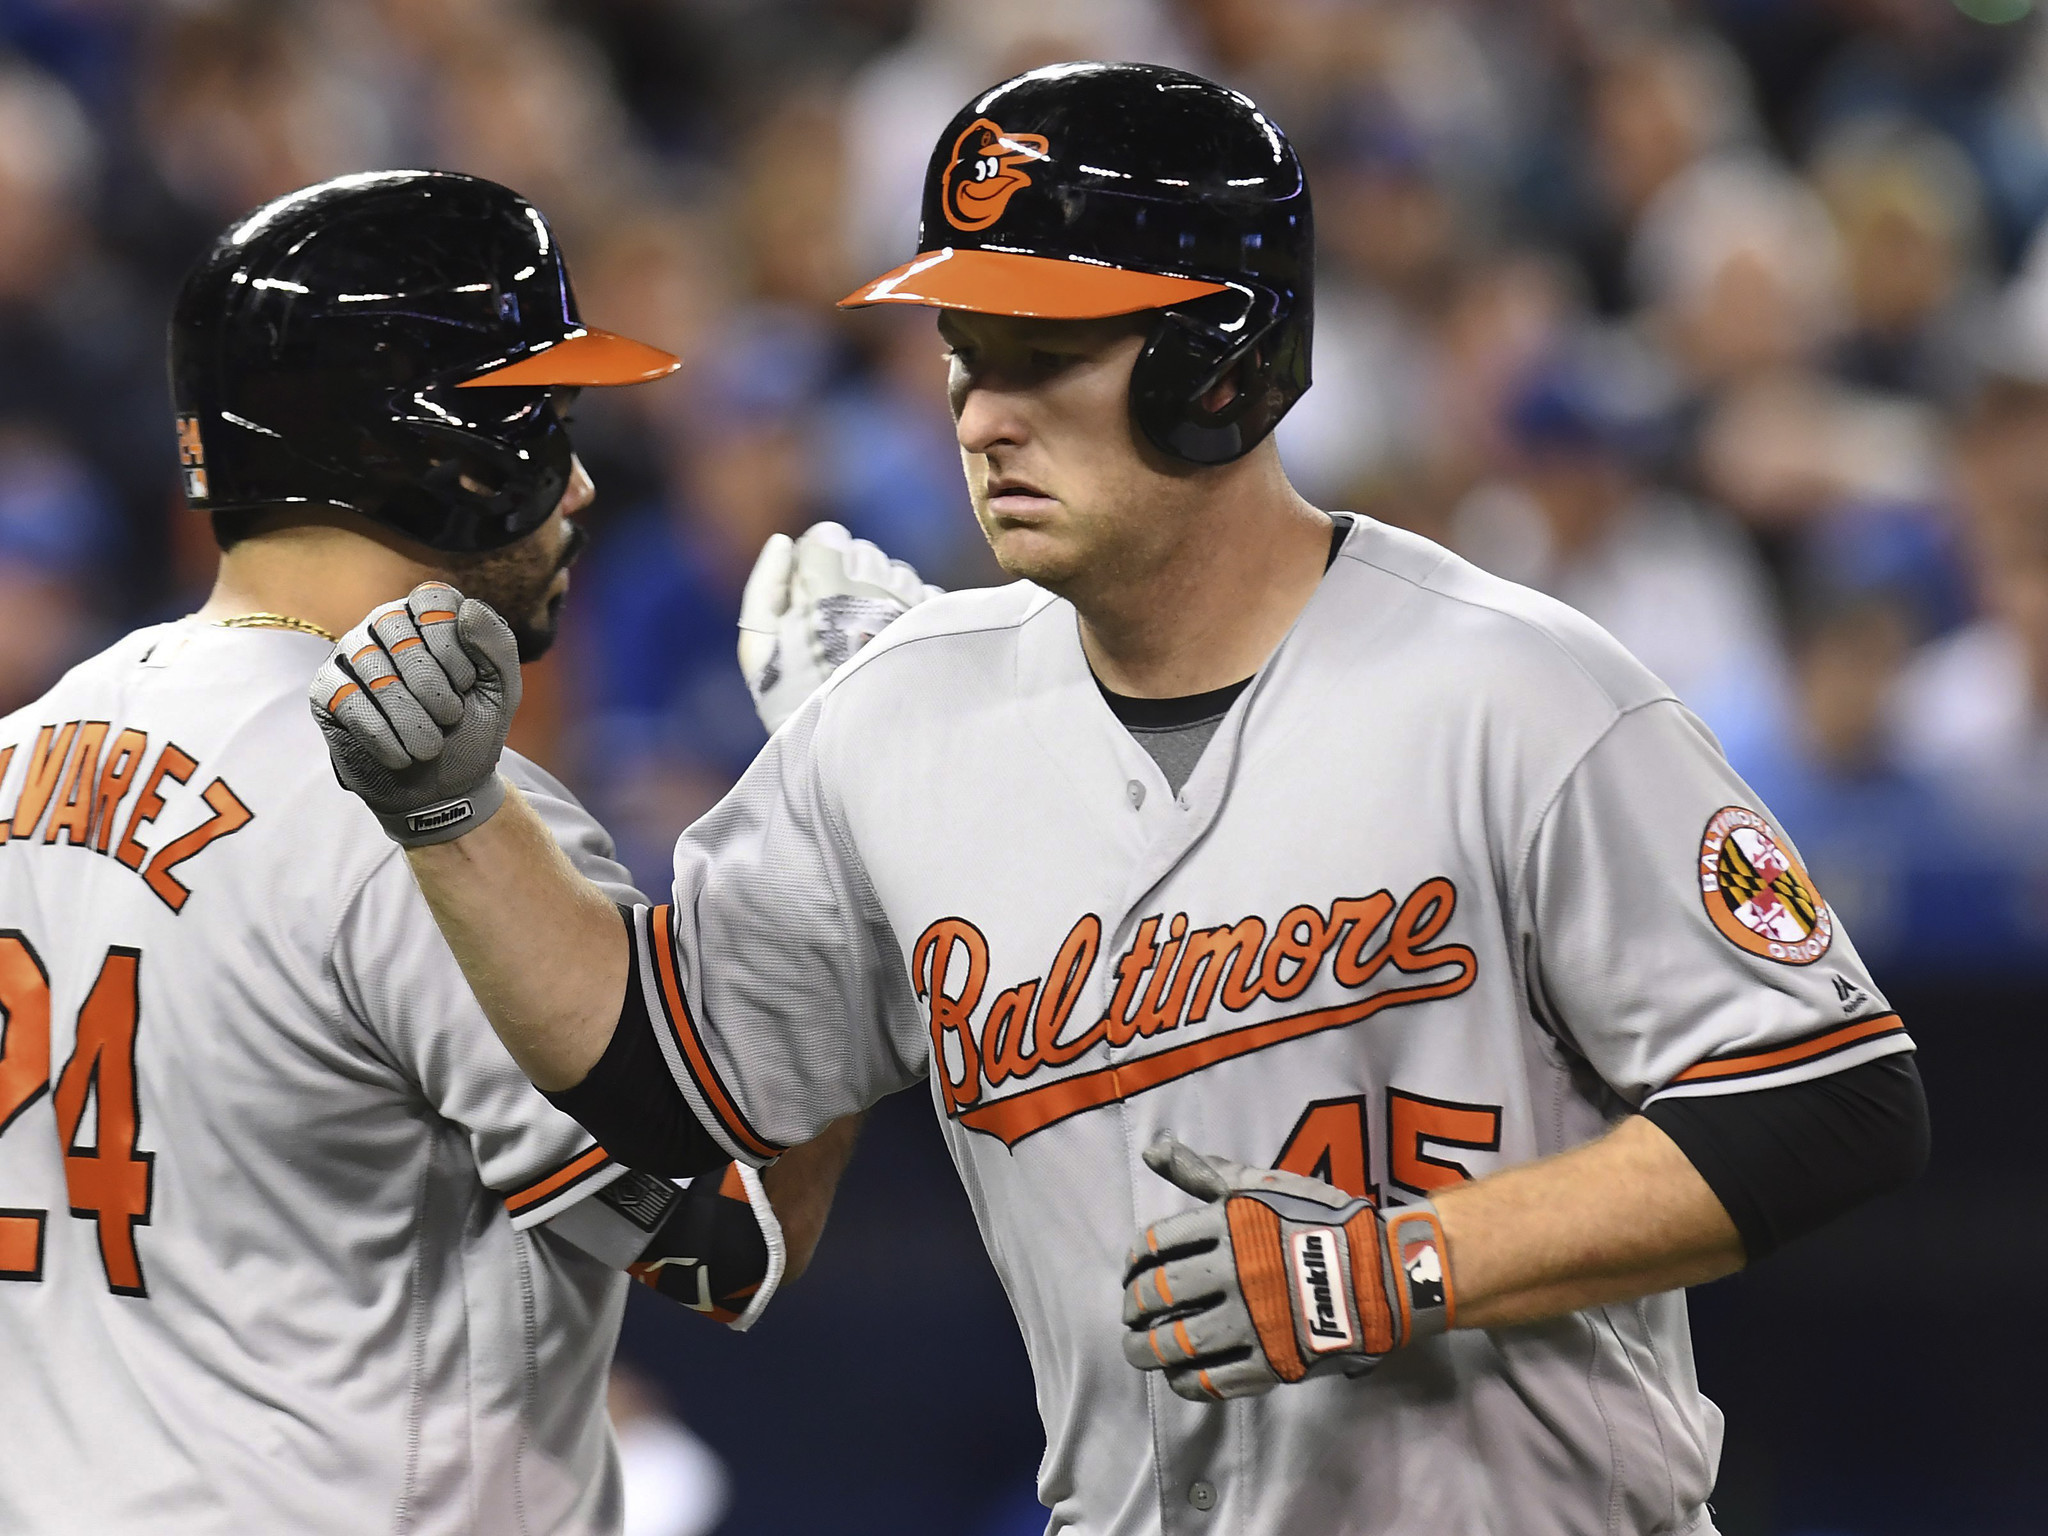 Bal-orioles-on-deck-what-to-watch-thursday-at-blue-jays-20160929